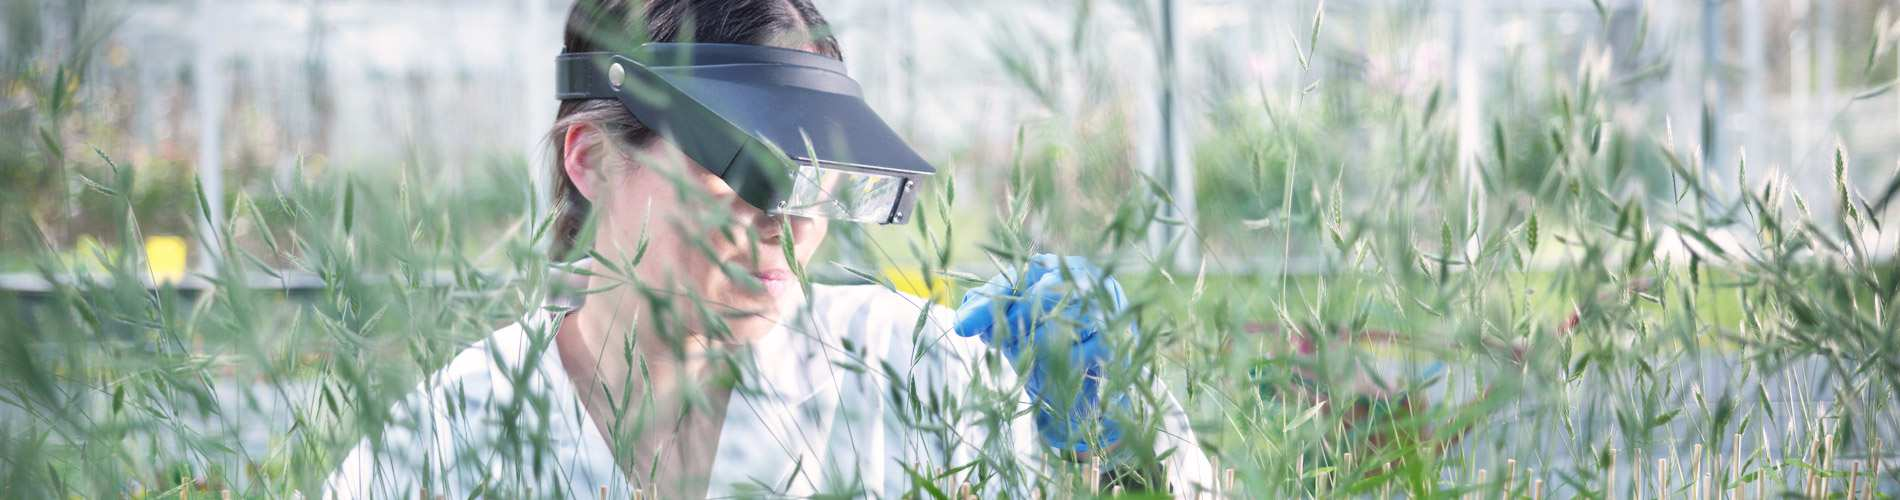 researcher looking at plants